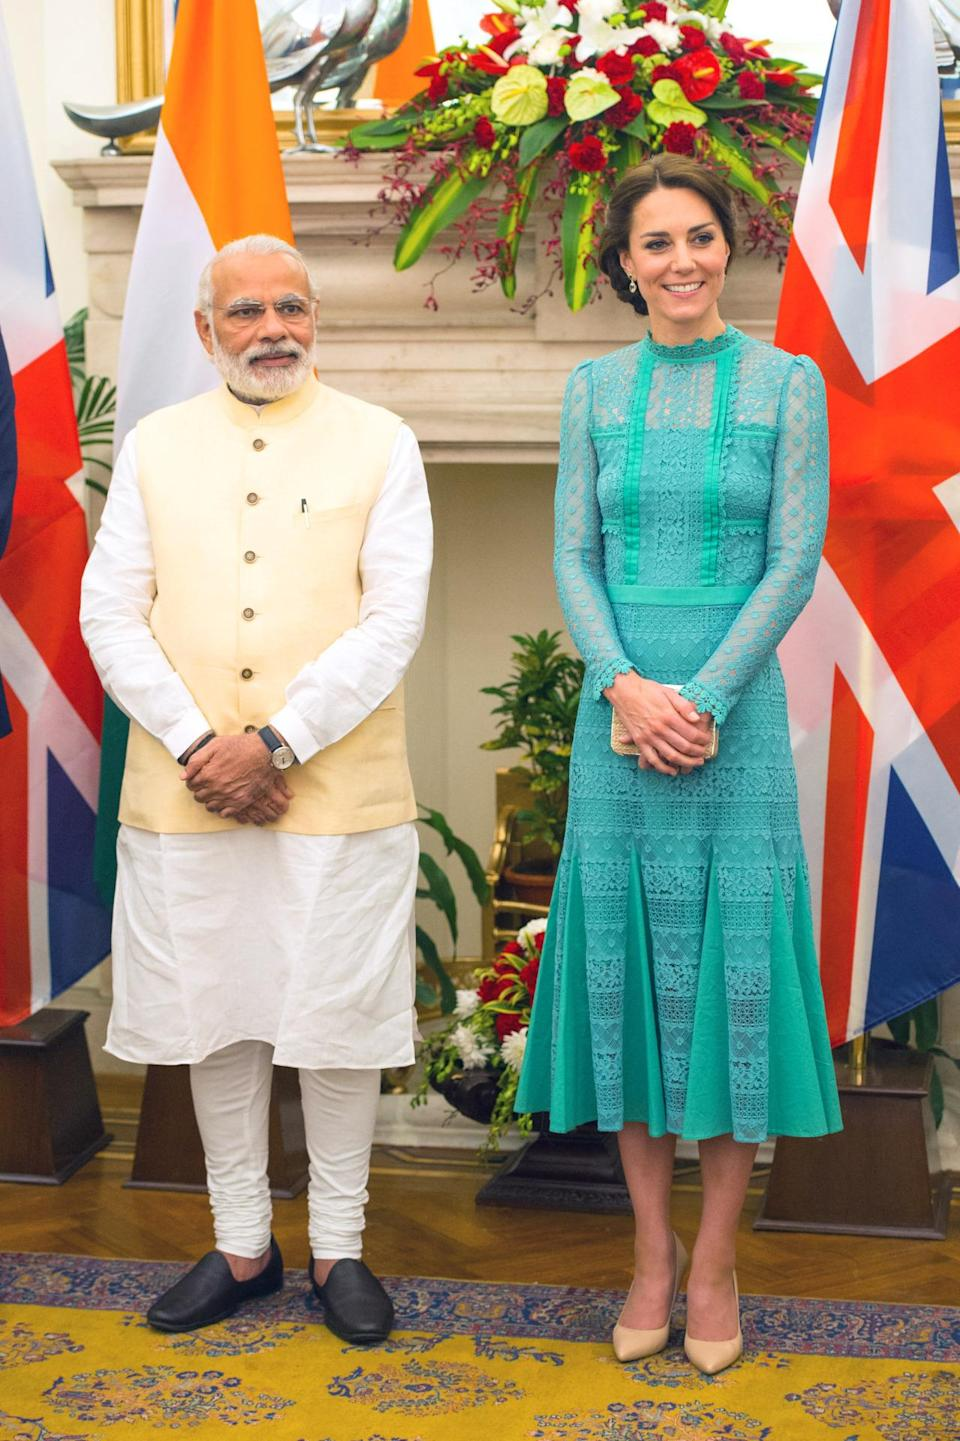 <p>The Duchess donned a high-necked mint Temperley London dress for a lunch with India's Prime Minister. Nude L.K. Bennett accessories polished off the look. </p><p><i>[Photo: PA]</i></p>